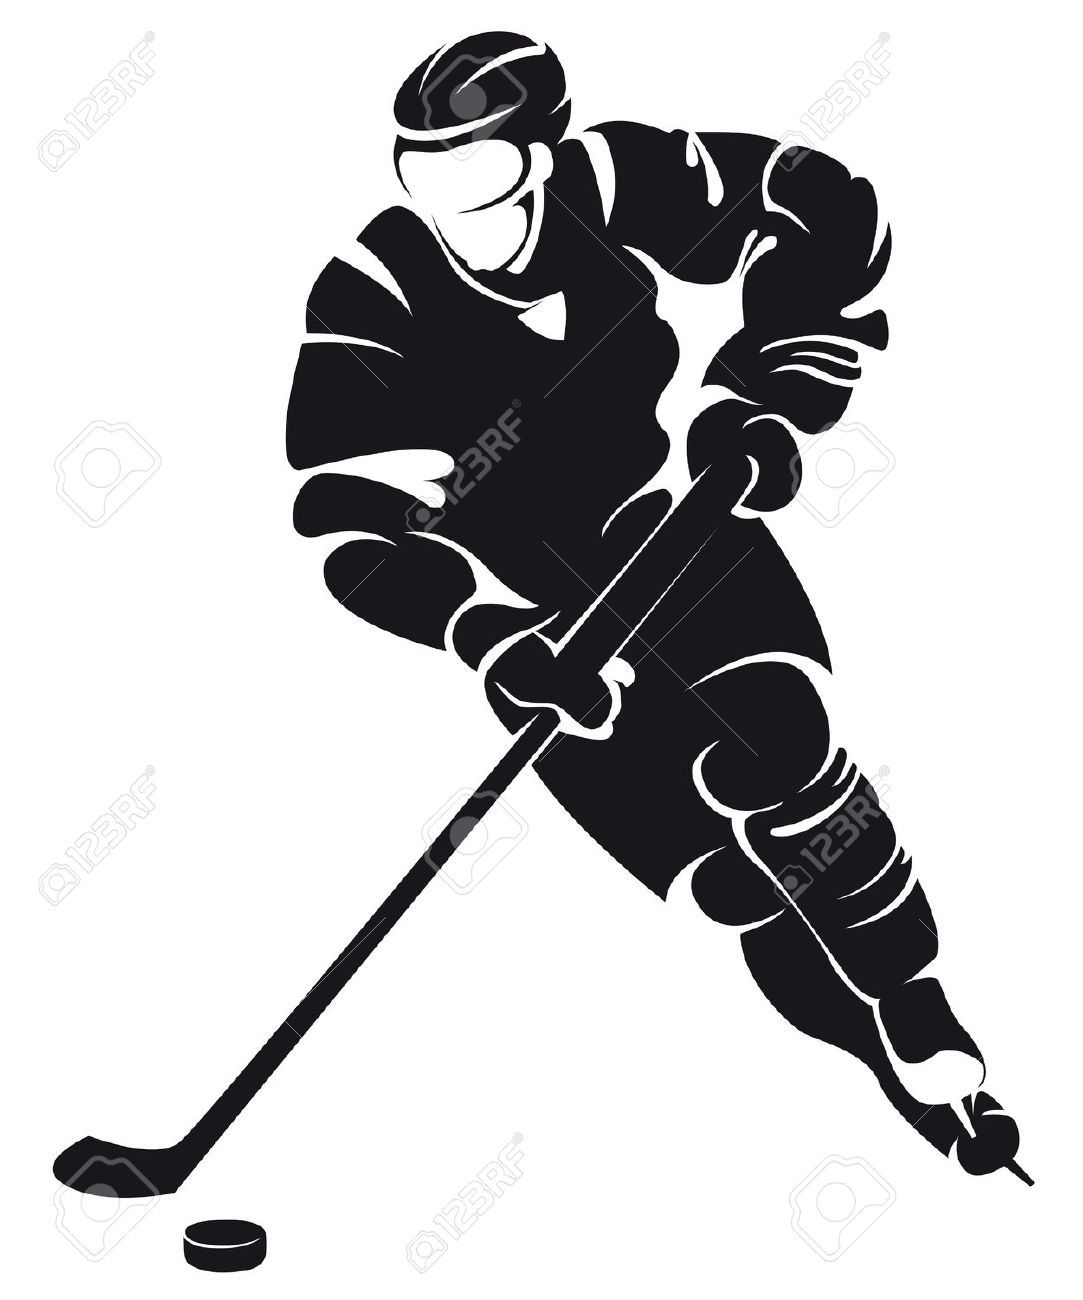 Hockey Clipart Vector Free Clipartfest Hockey Players Hockey Hockey Girls